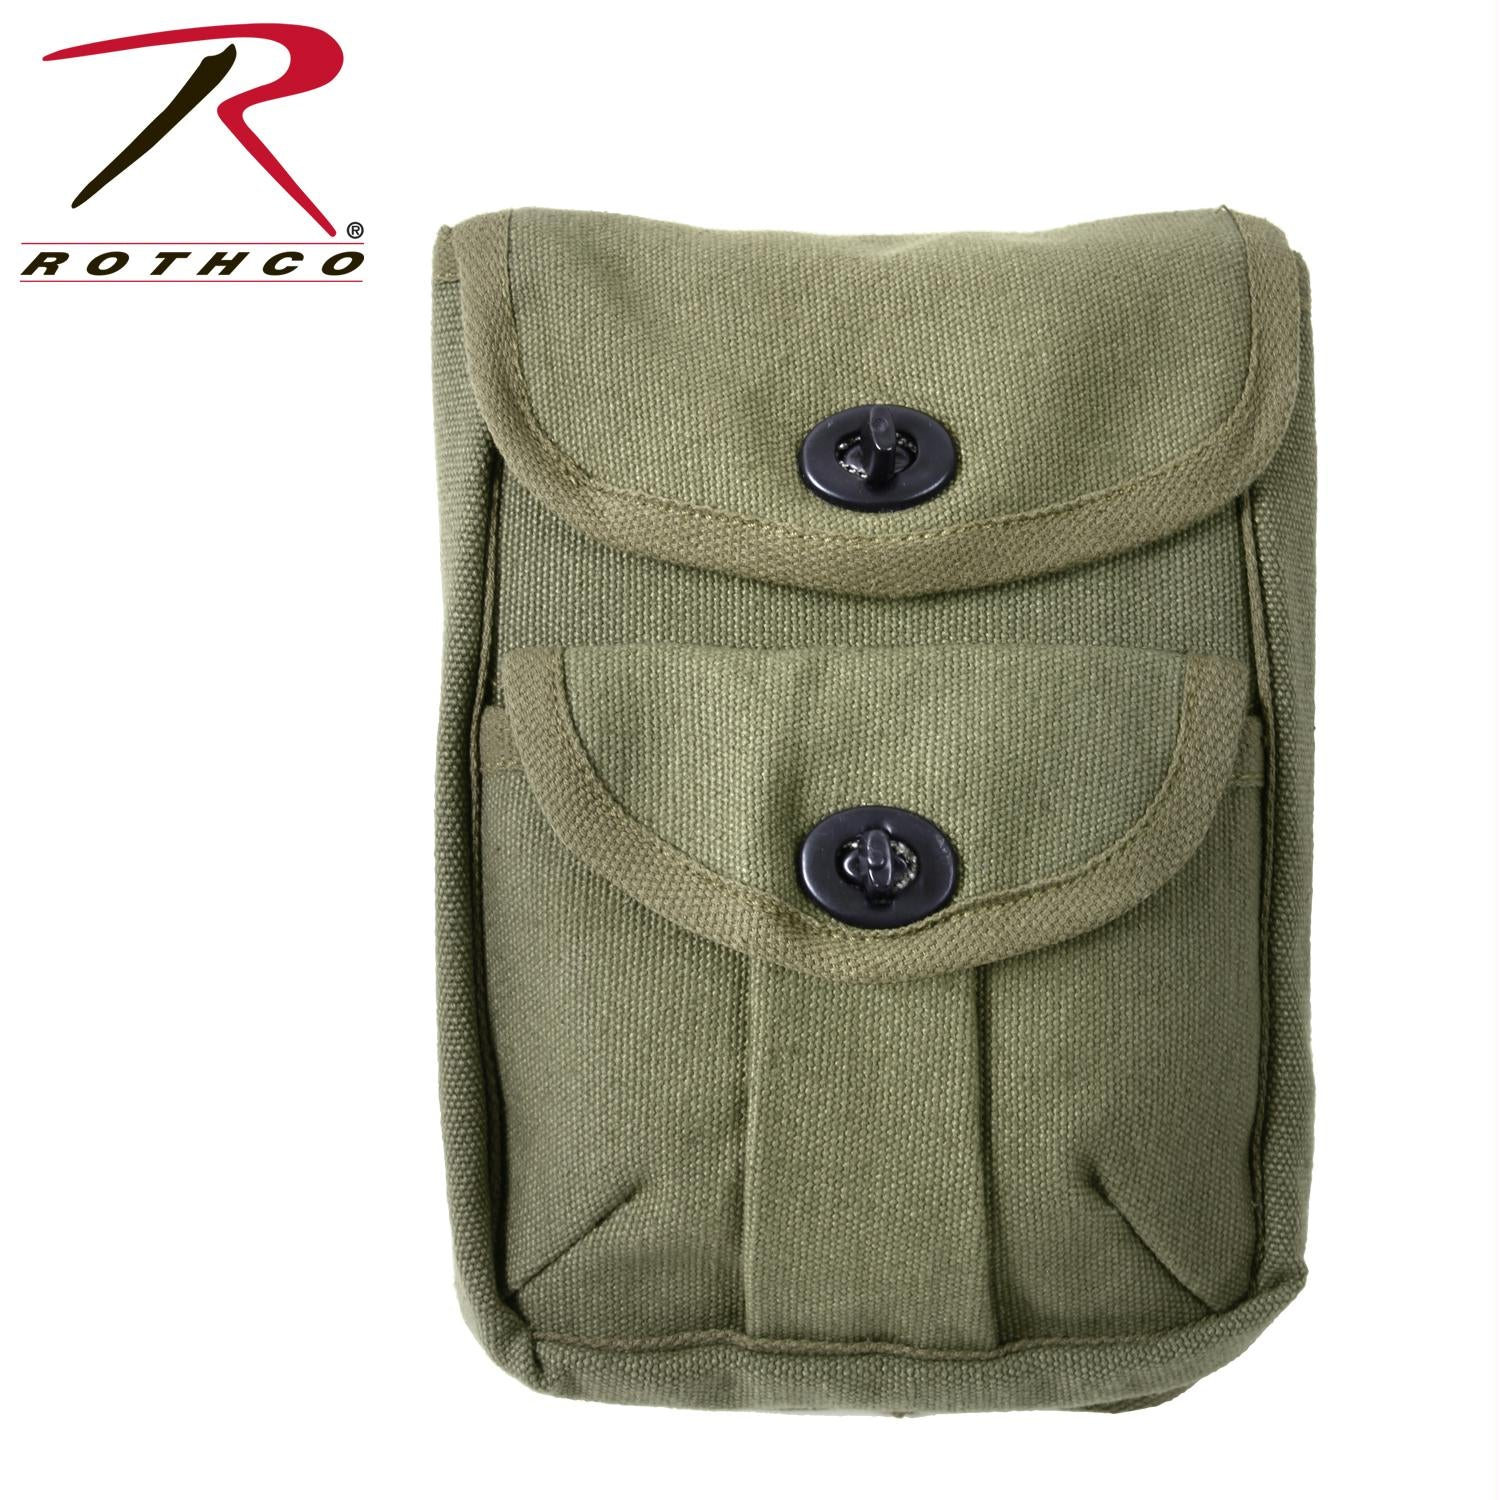 Rothco Ammo Pouches - Olive Drab